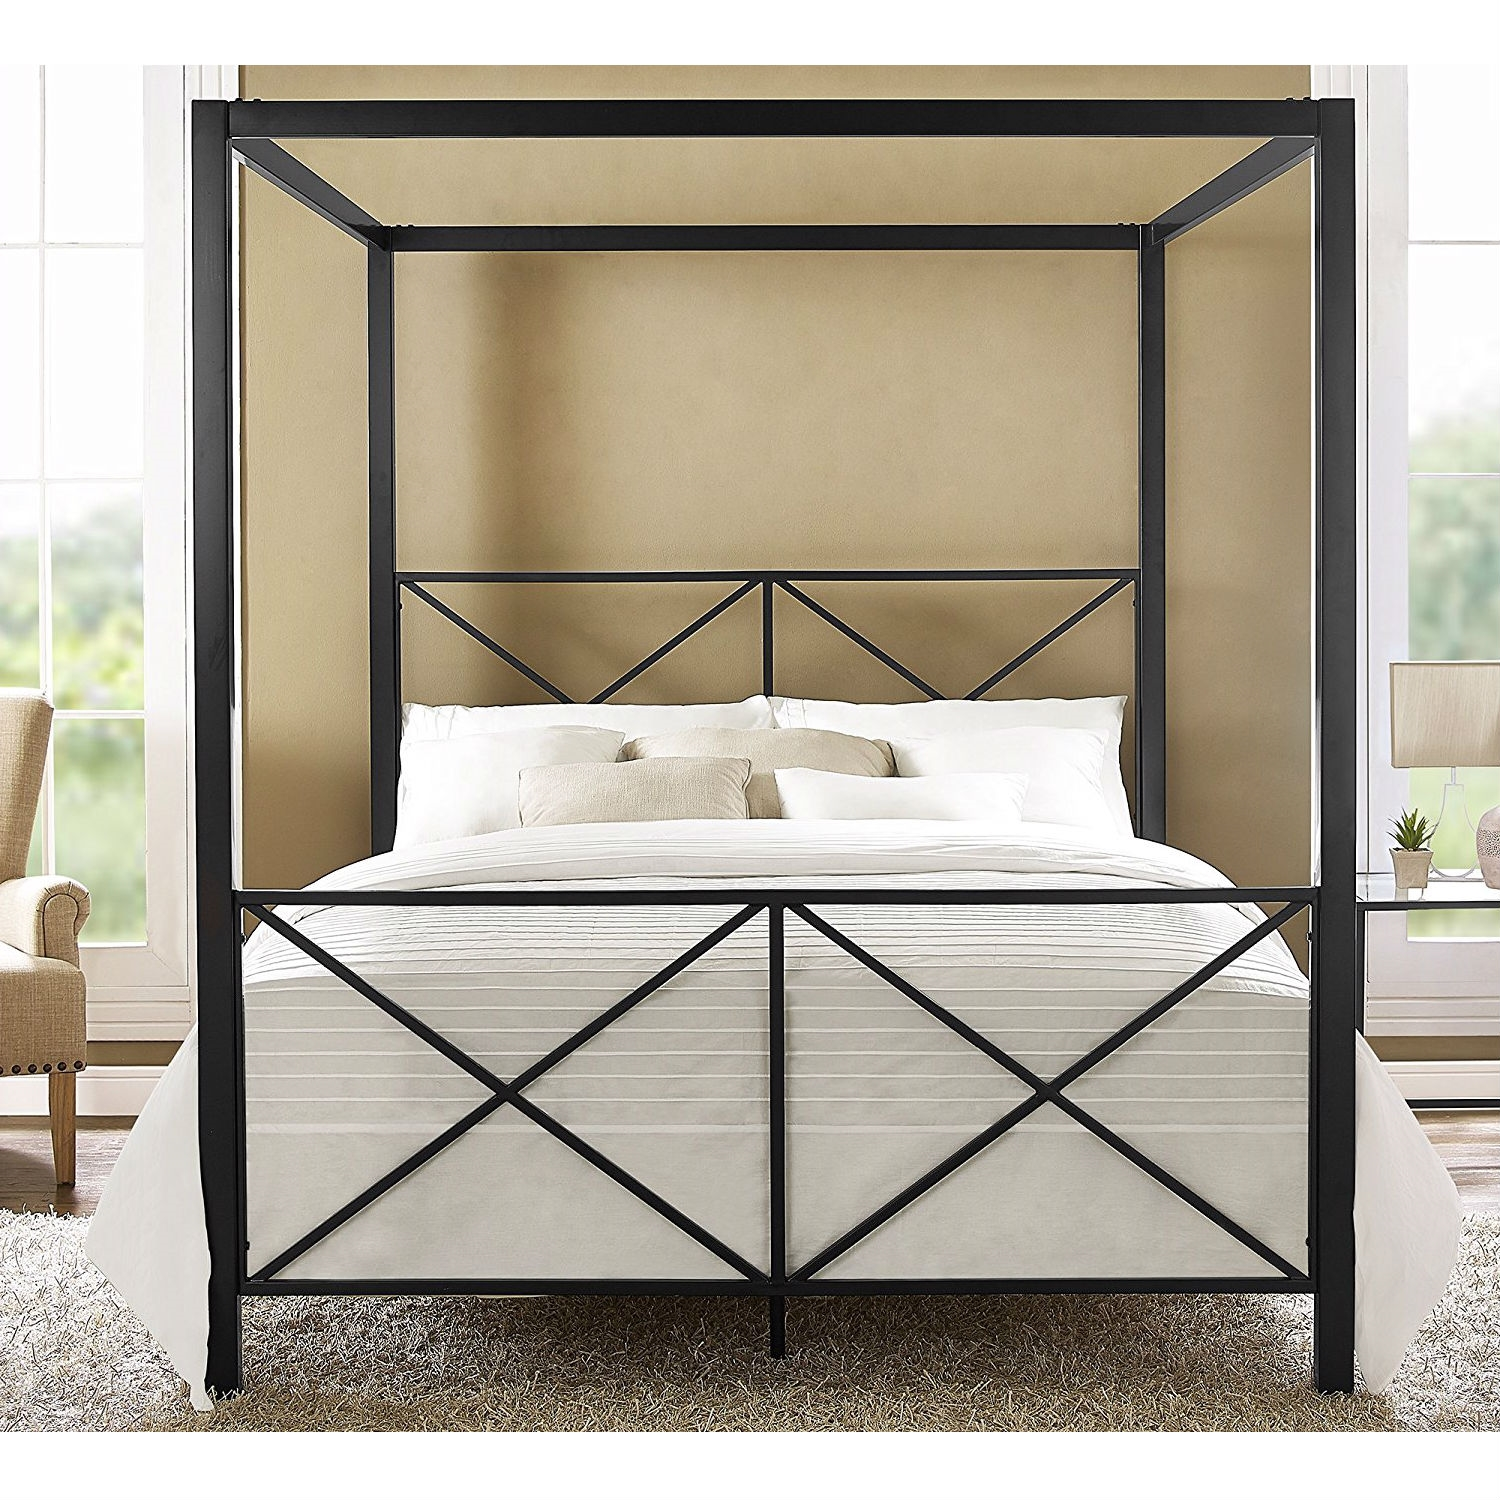 - Queen Size 4-Post Metal Canopy Bed Frame In Black